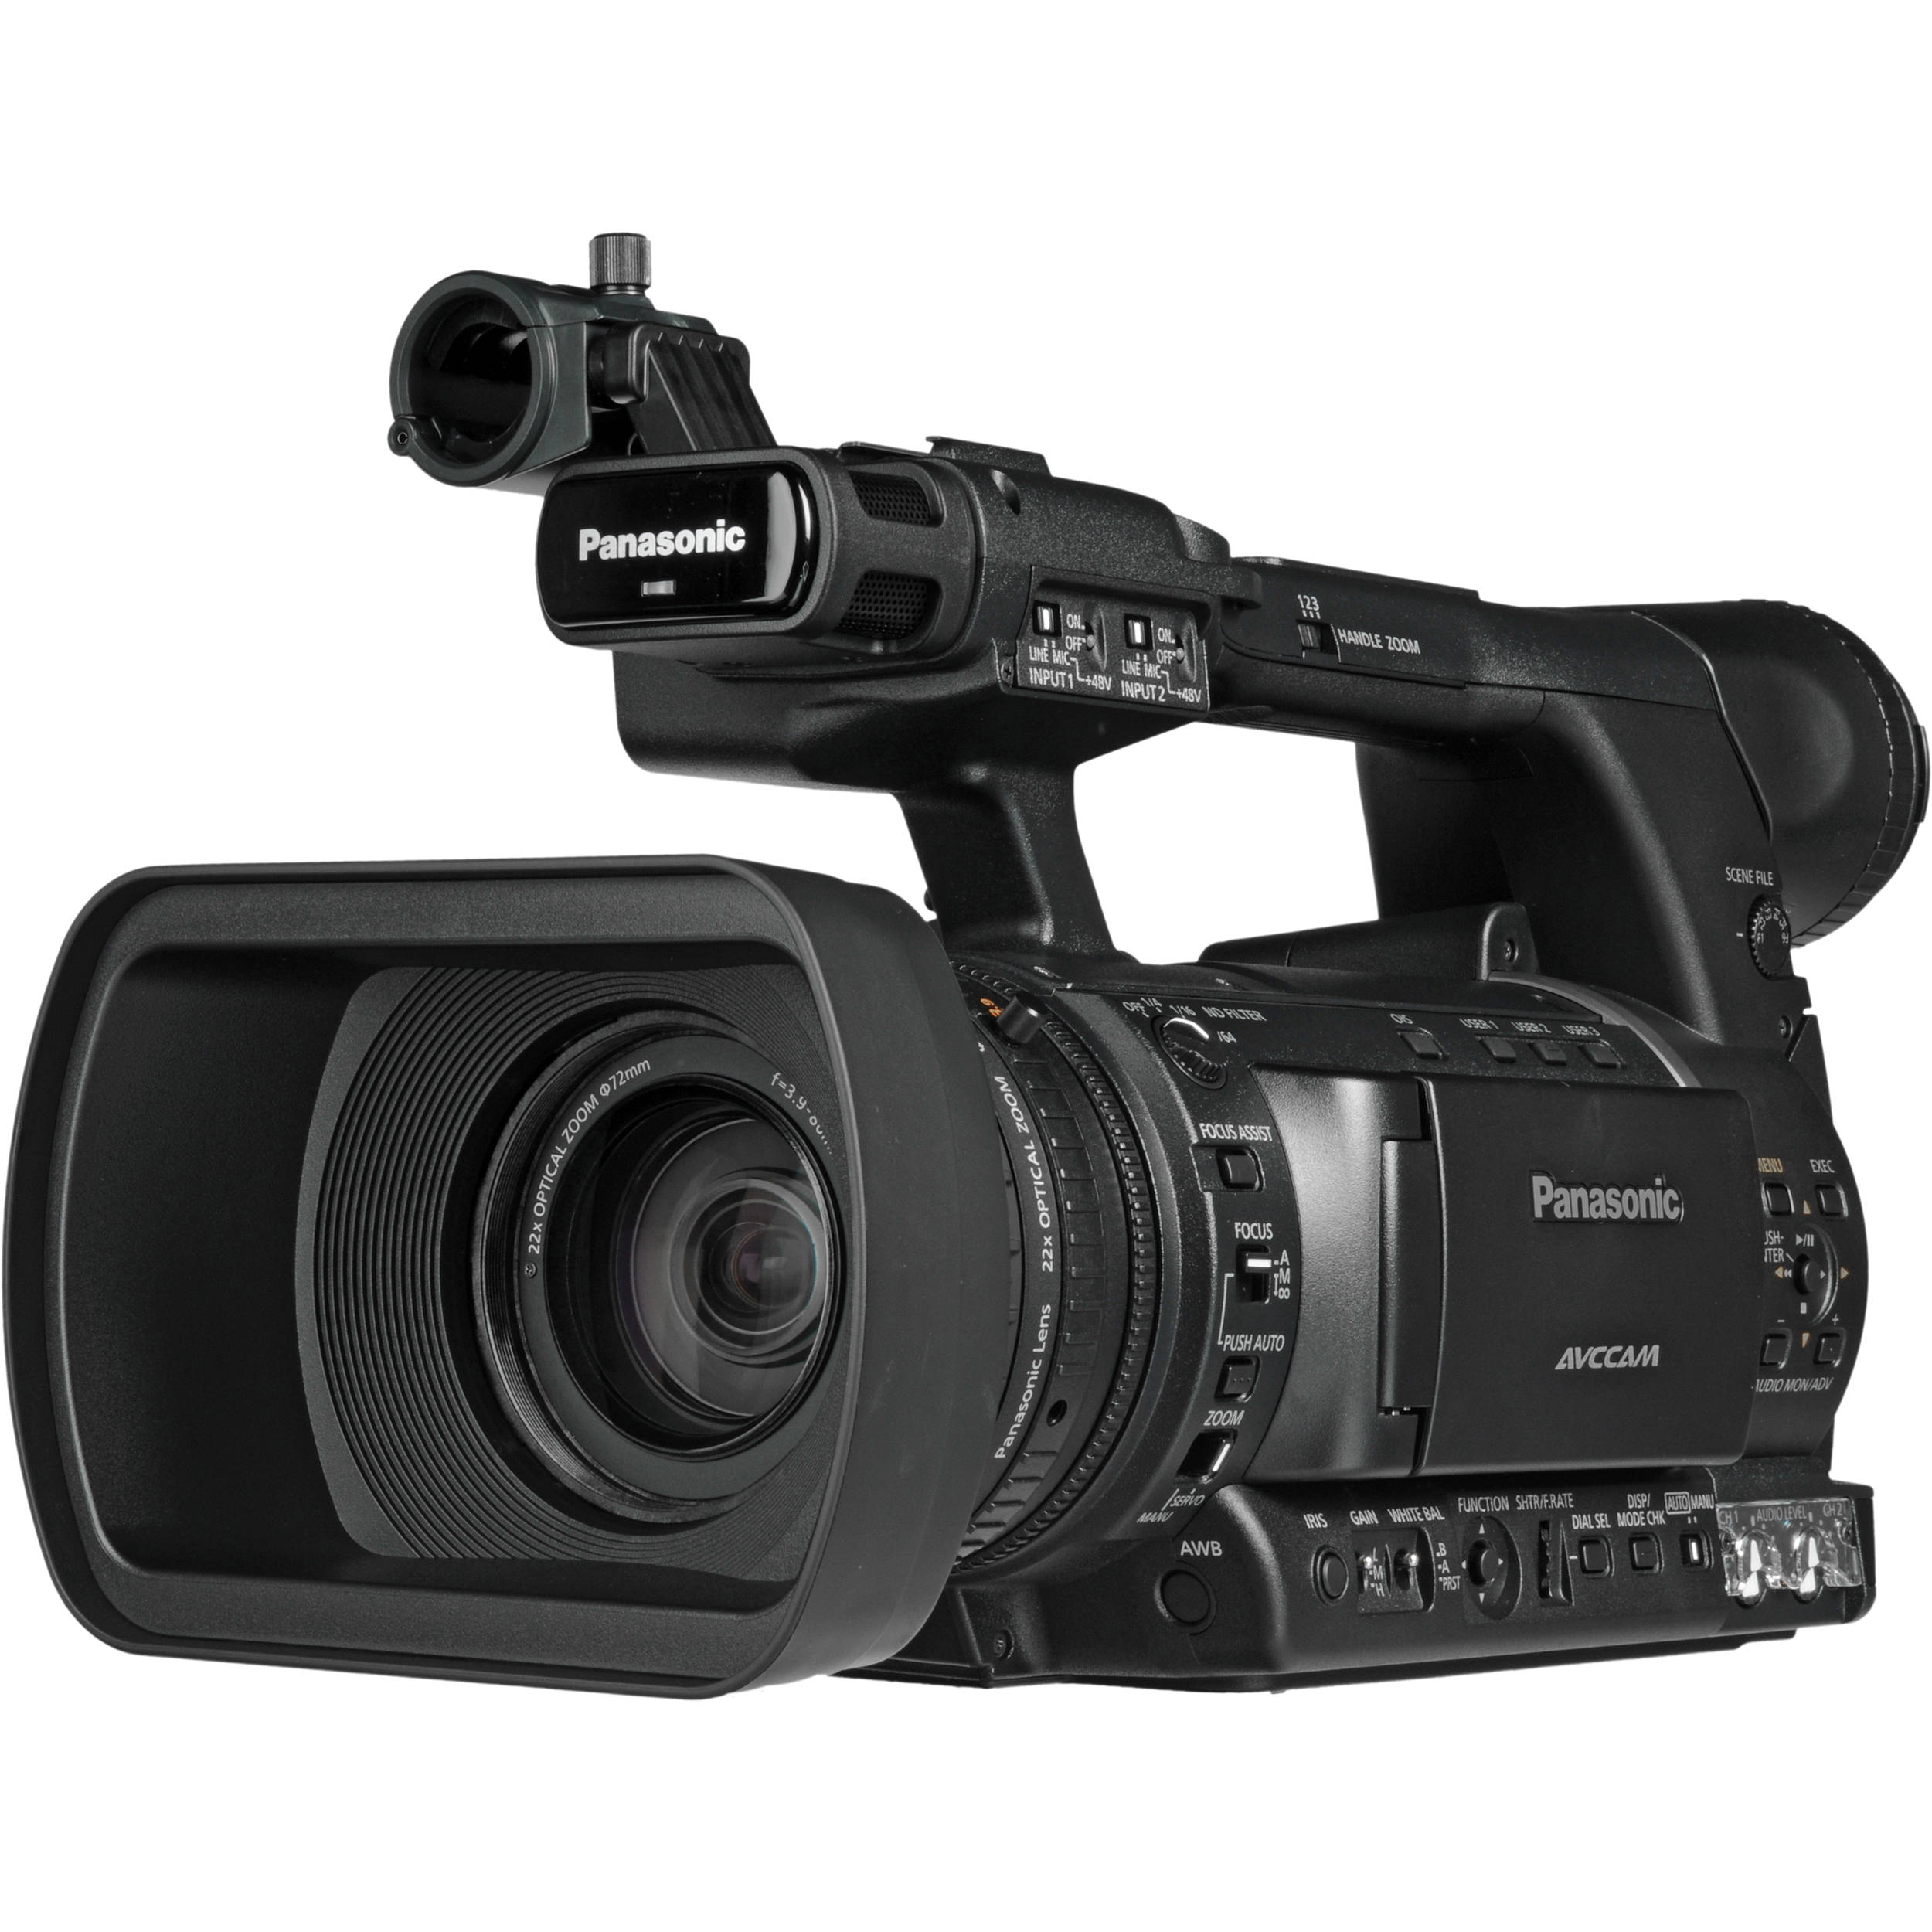 panasonic hd video camera 160 images galleries with a bite. Black Bedroom Furniture Sets. Home Design Ideas